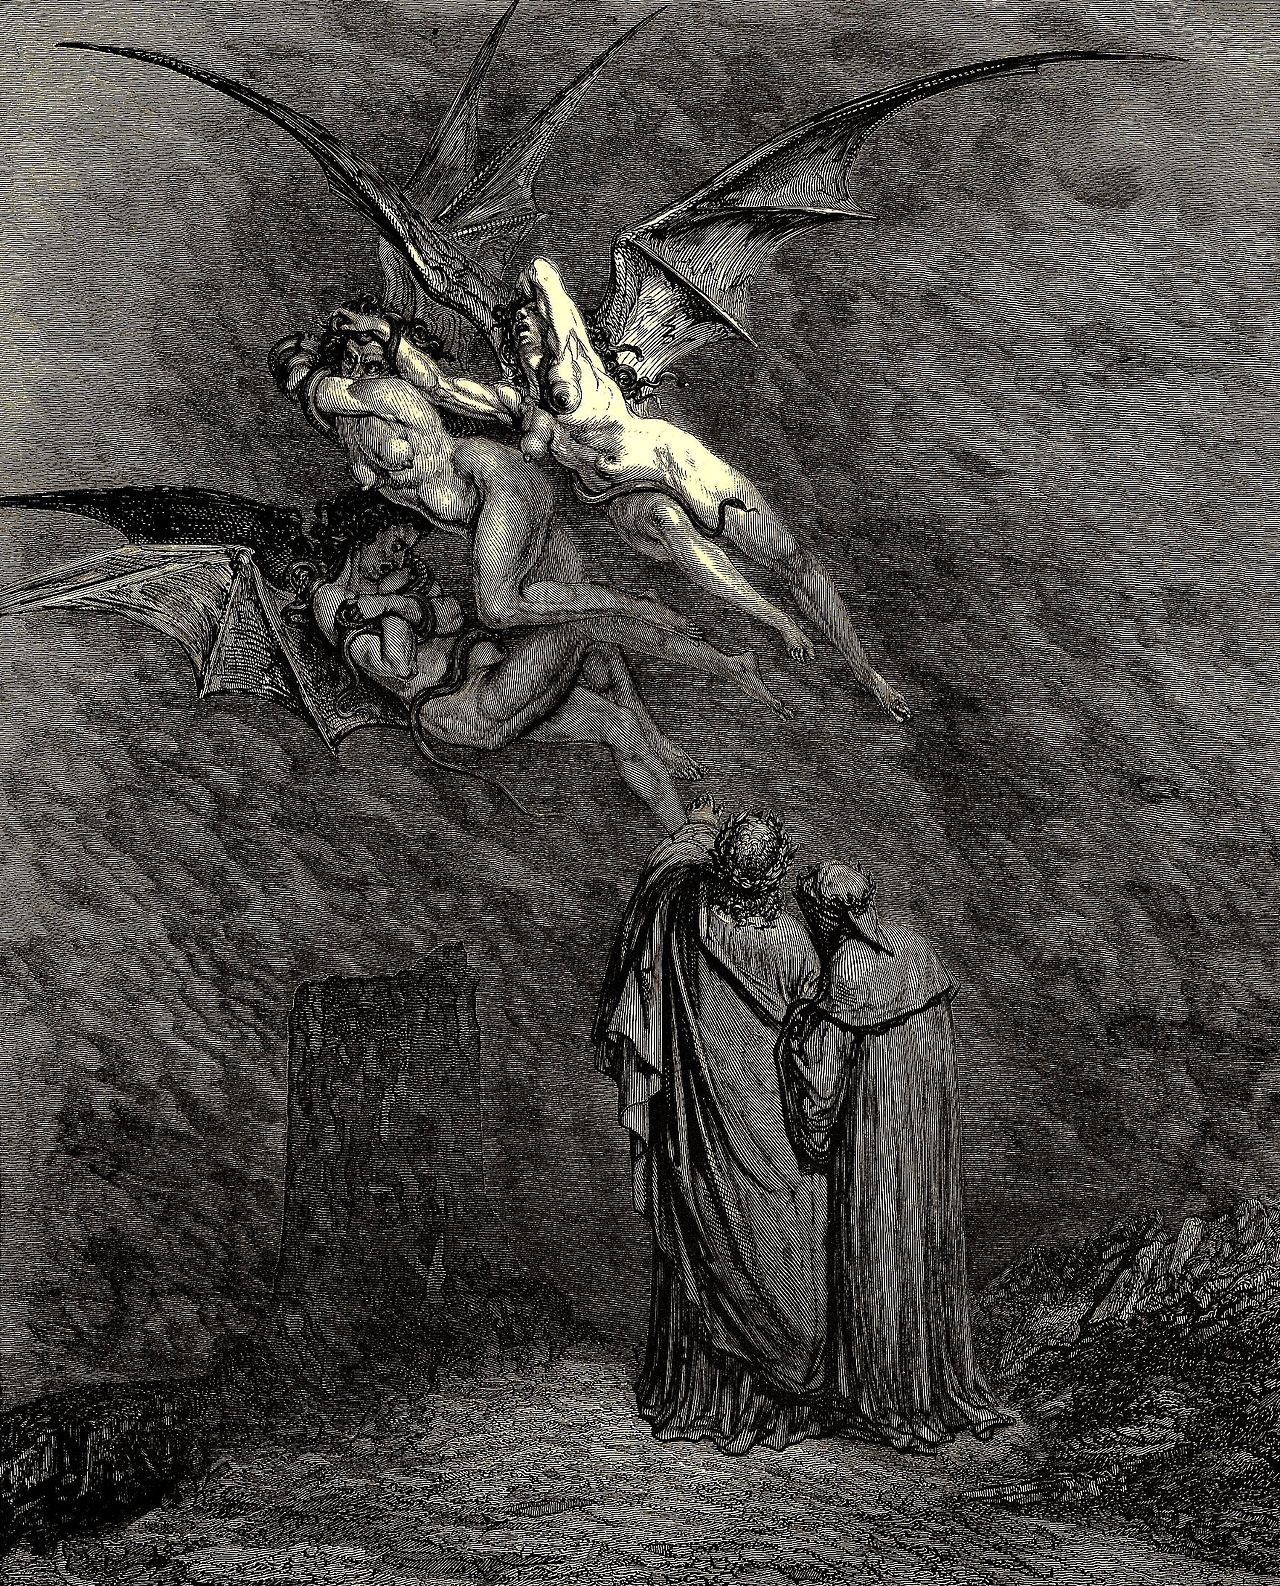 Gustav Doré, Dante illustration